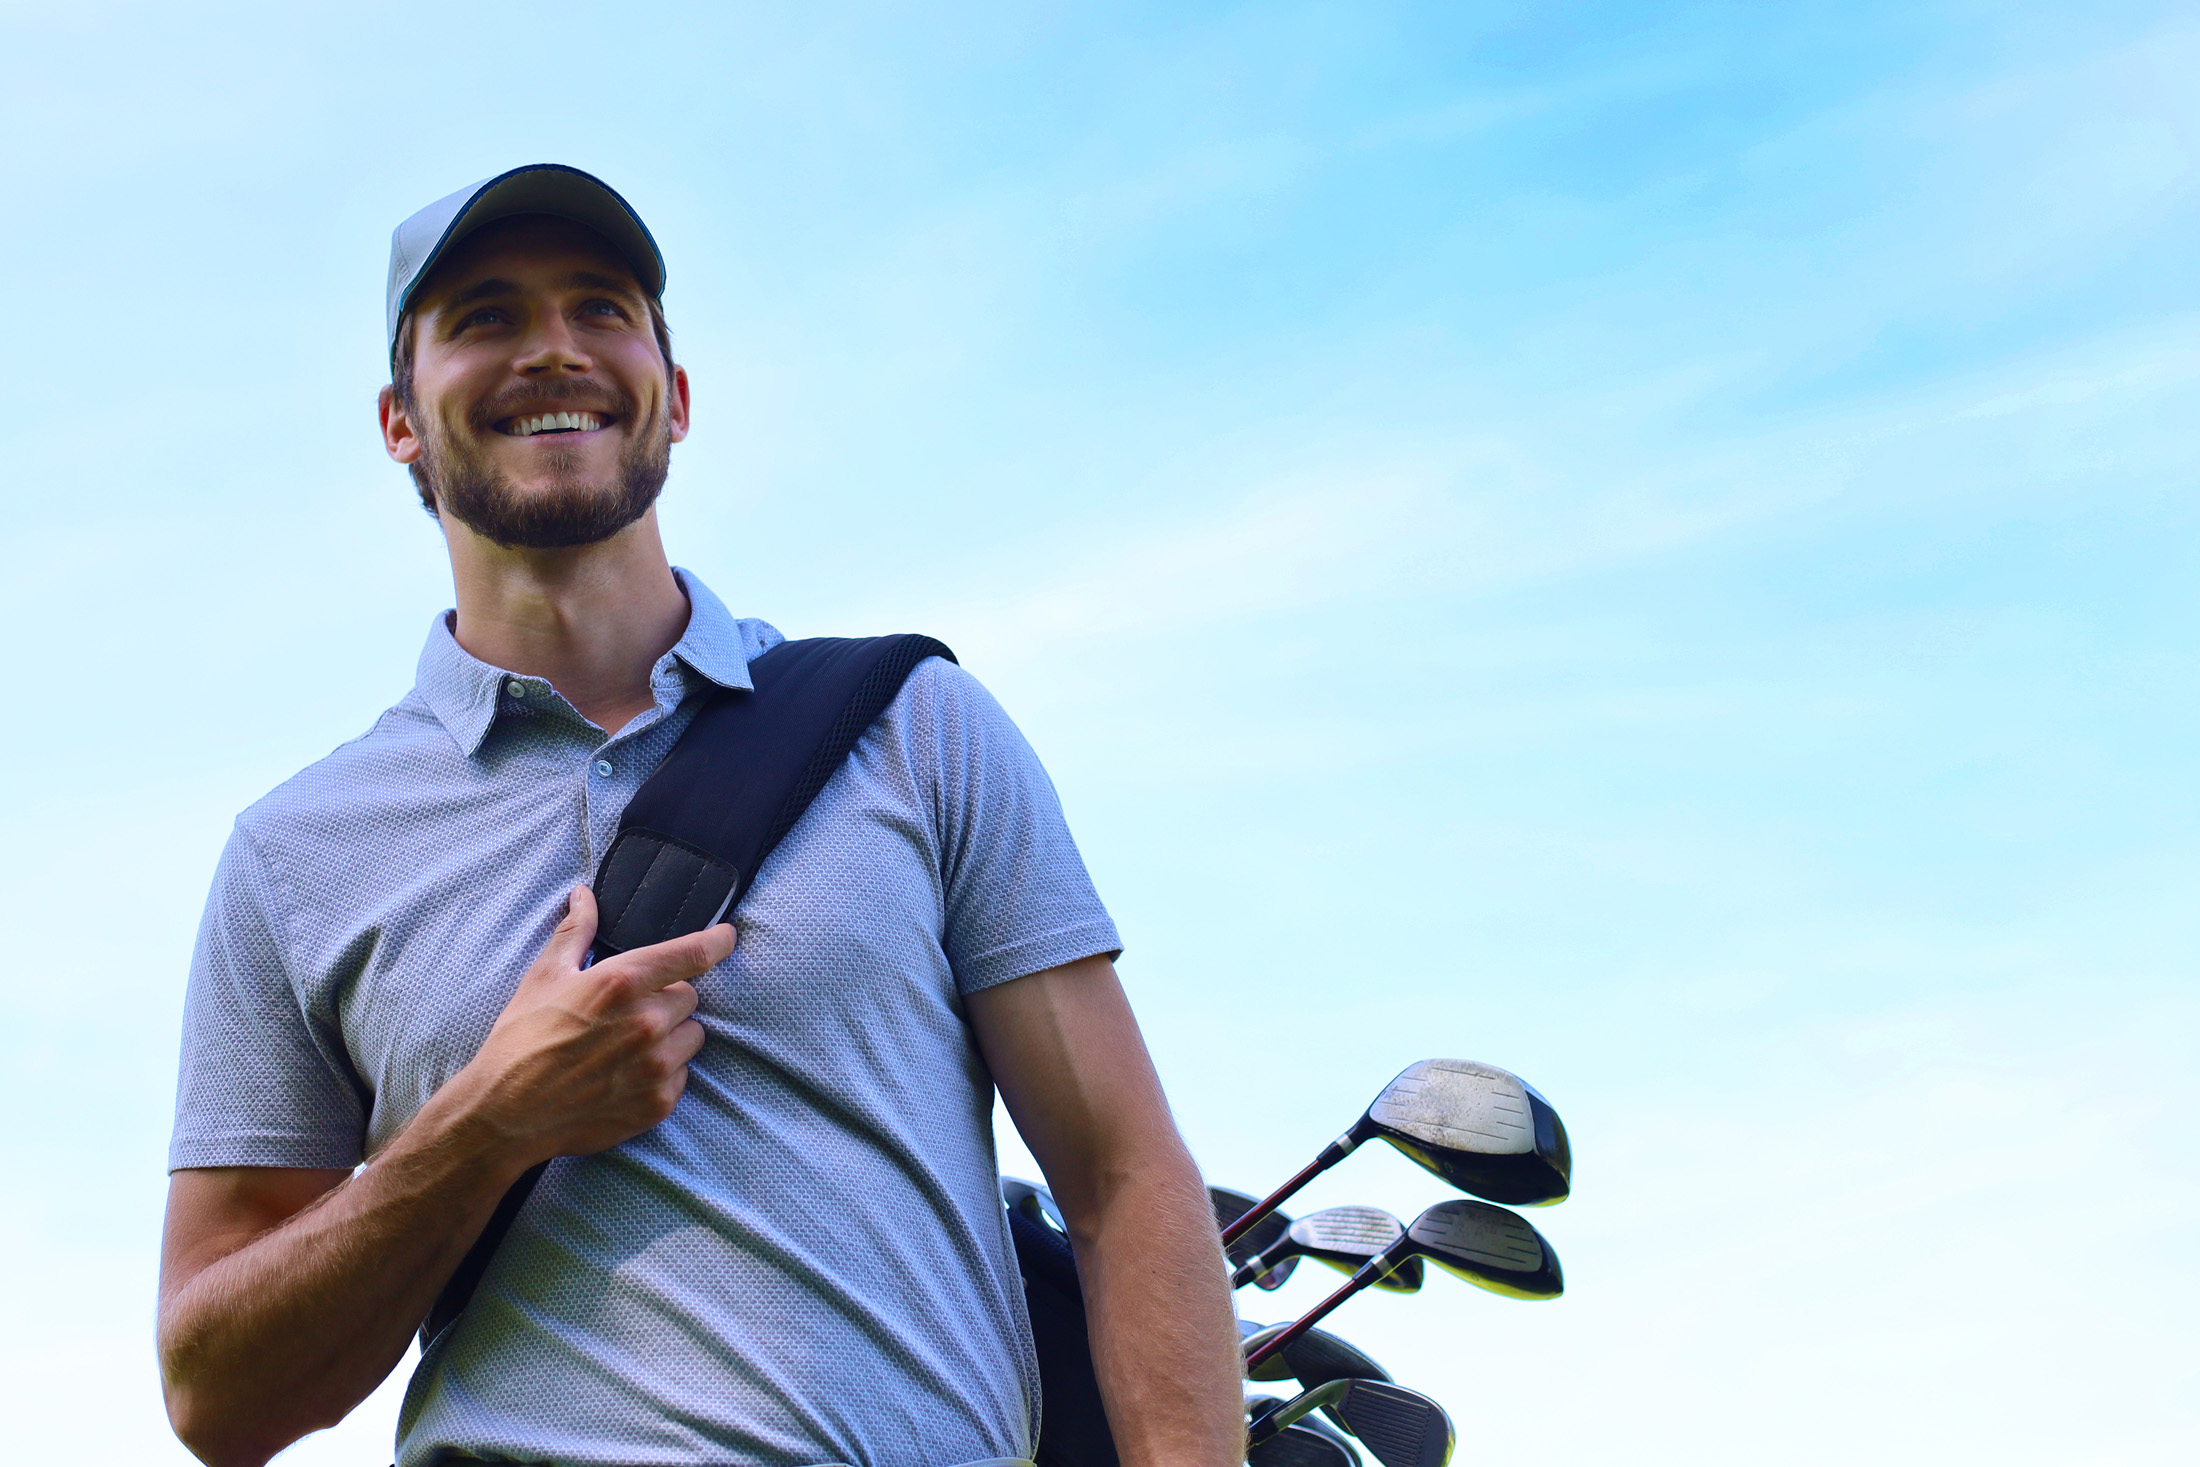 Golf Benefits: How to Strengthen Your Mind & Body